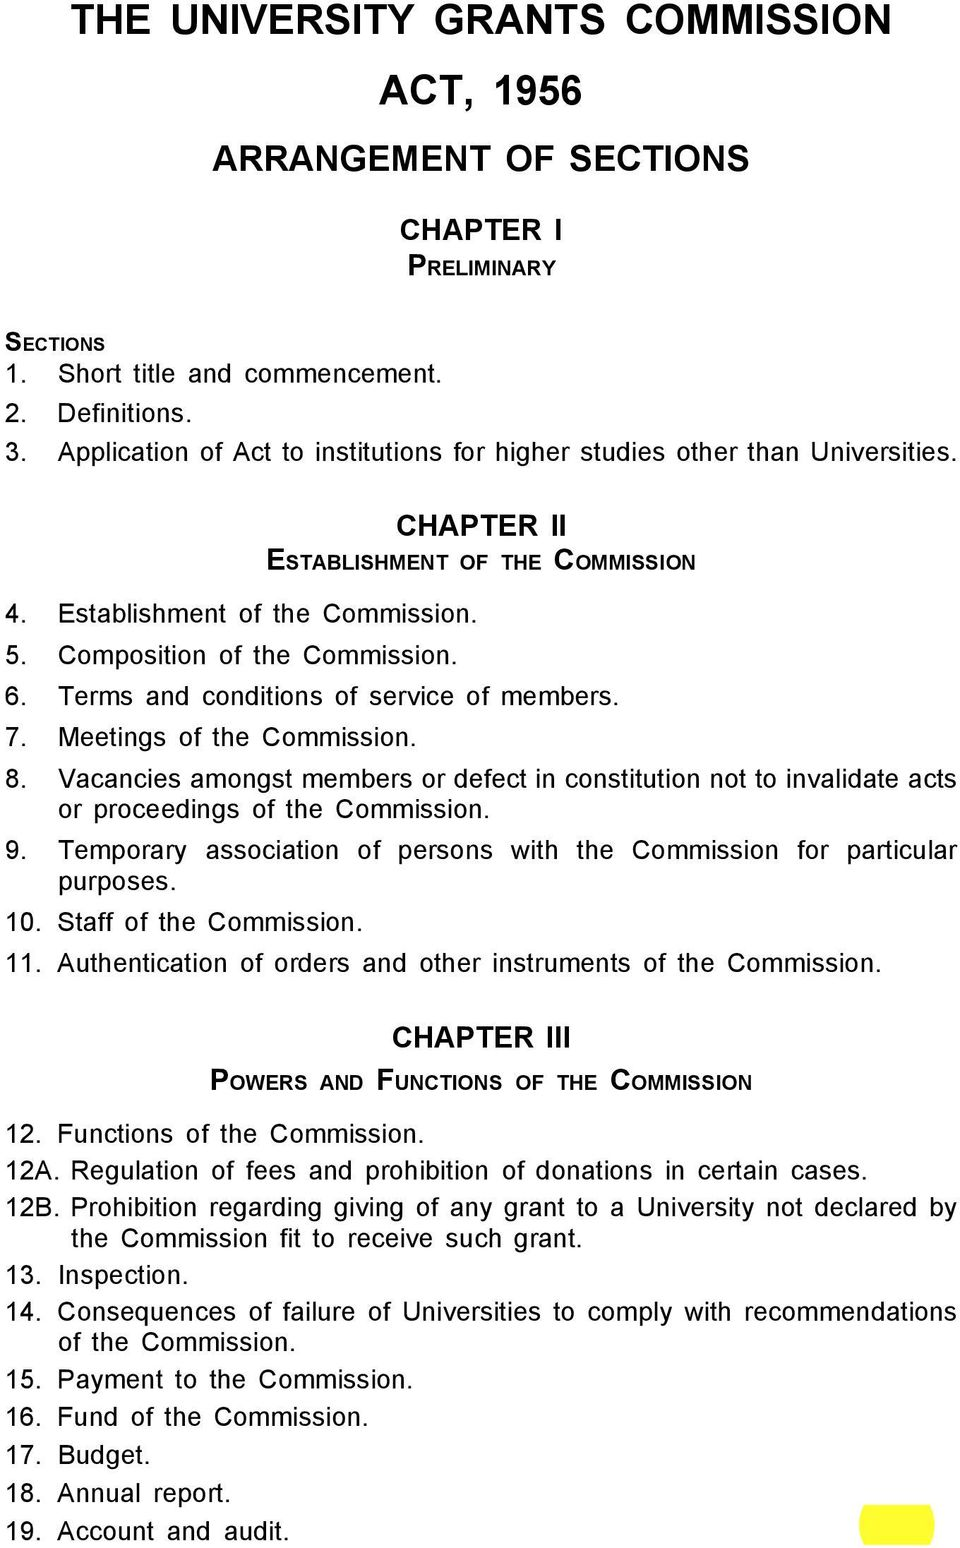 Terms and conditions of service of members. 7. Meetings of the Commission. 8. Vacancies amongst members or defect in constitution not to invalidate acts or proceedings of the Commission. 9.